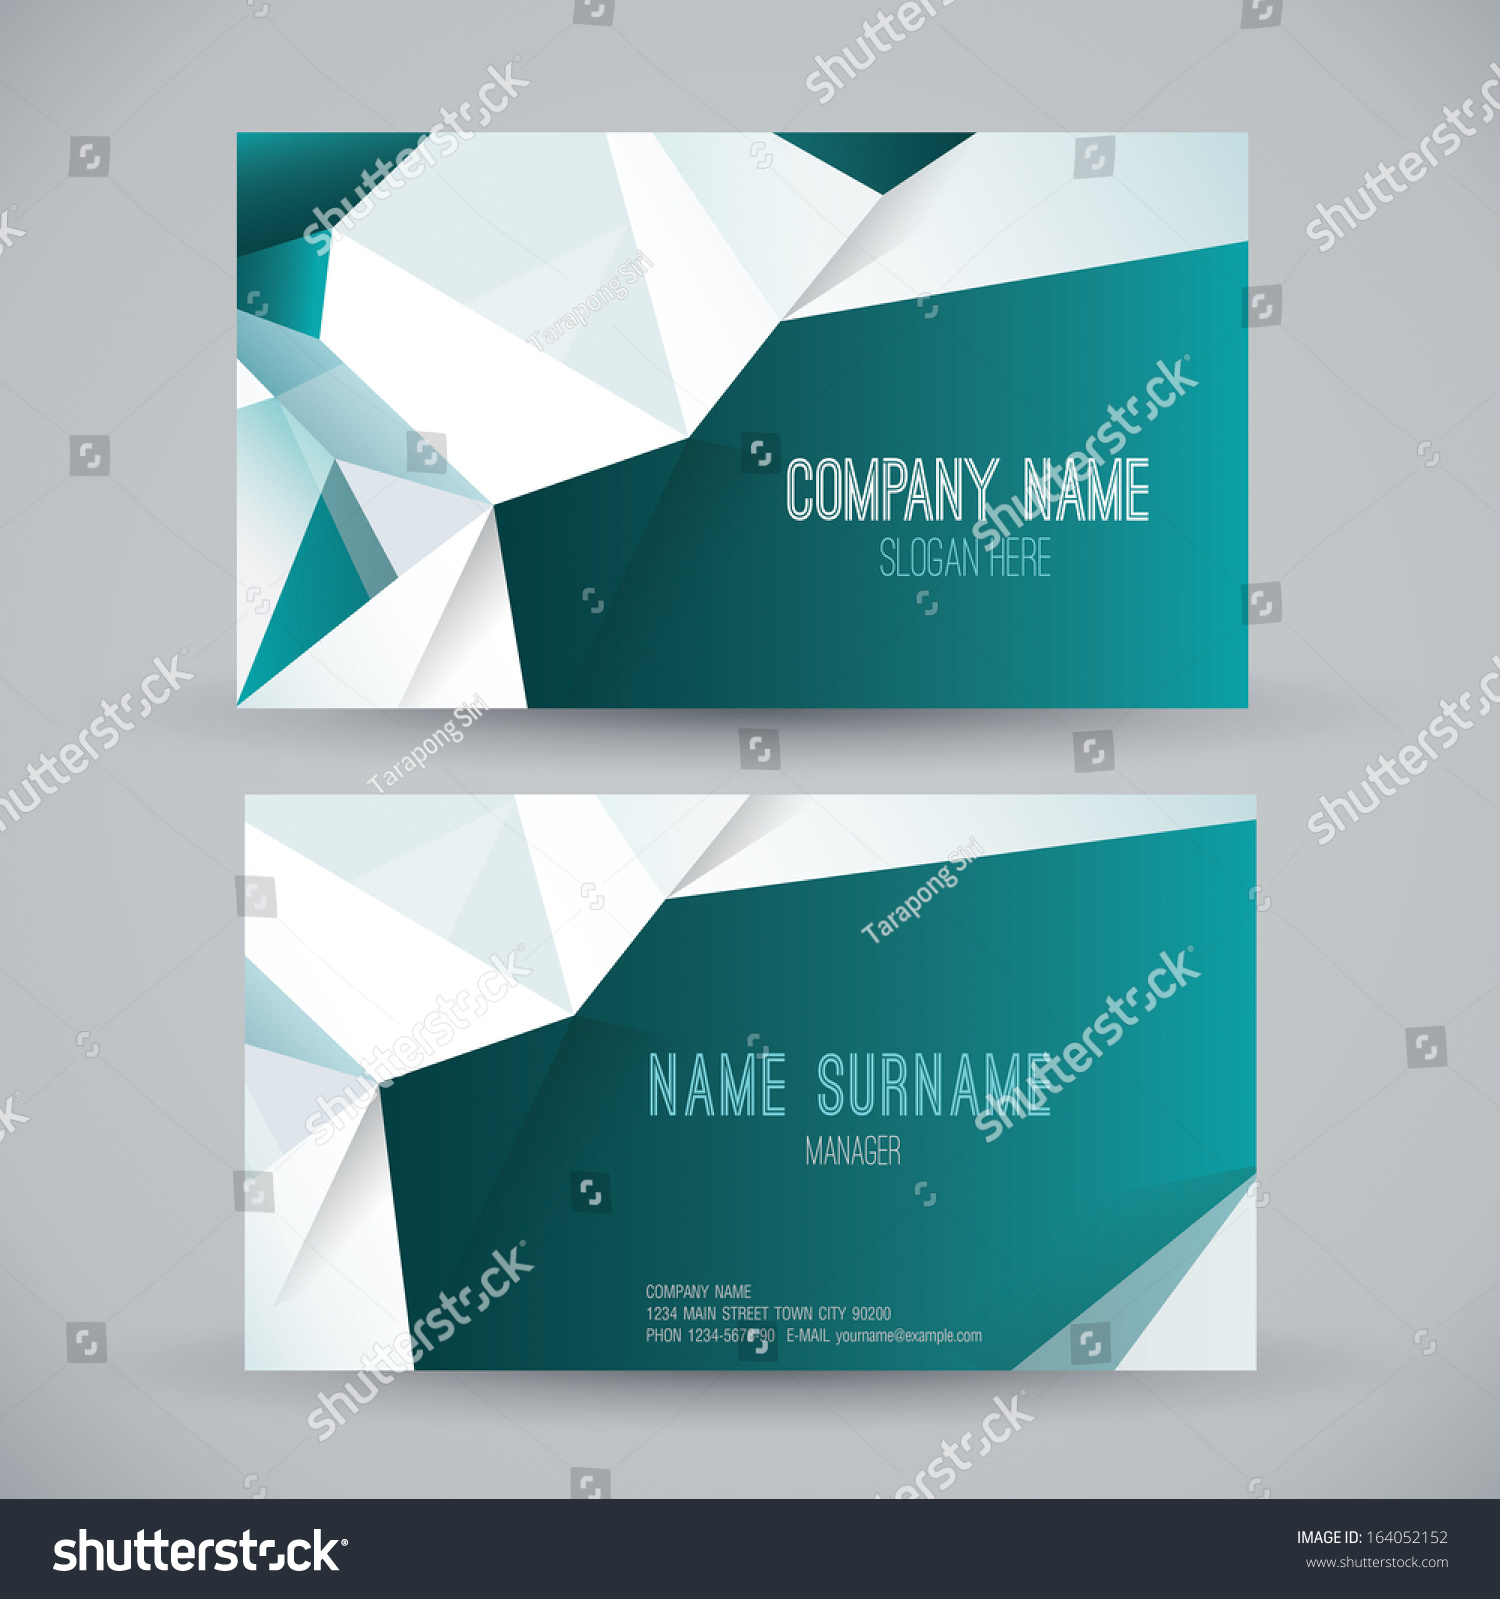 Business Card Template. Name Card Abstract Background. Vector Illustration.  Name Card Example